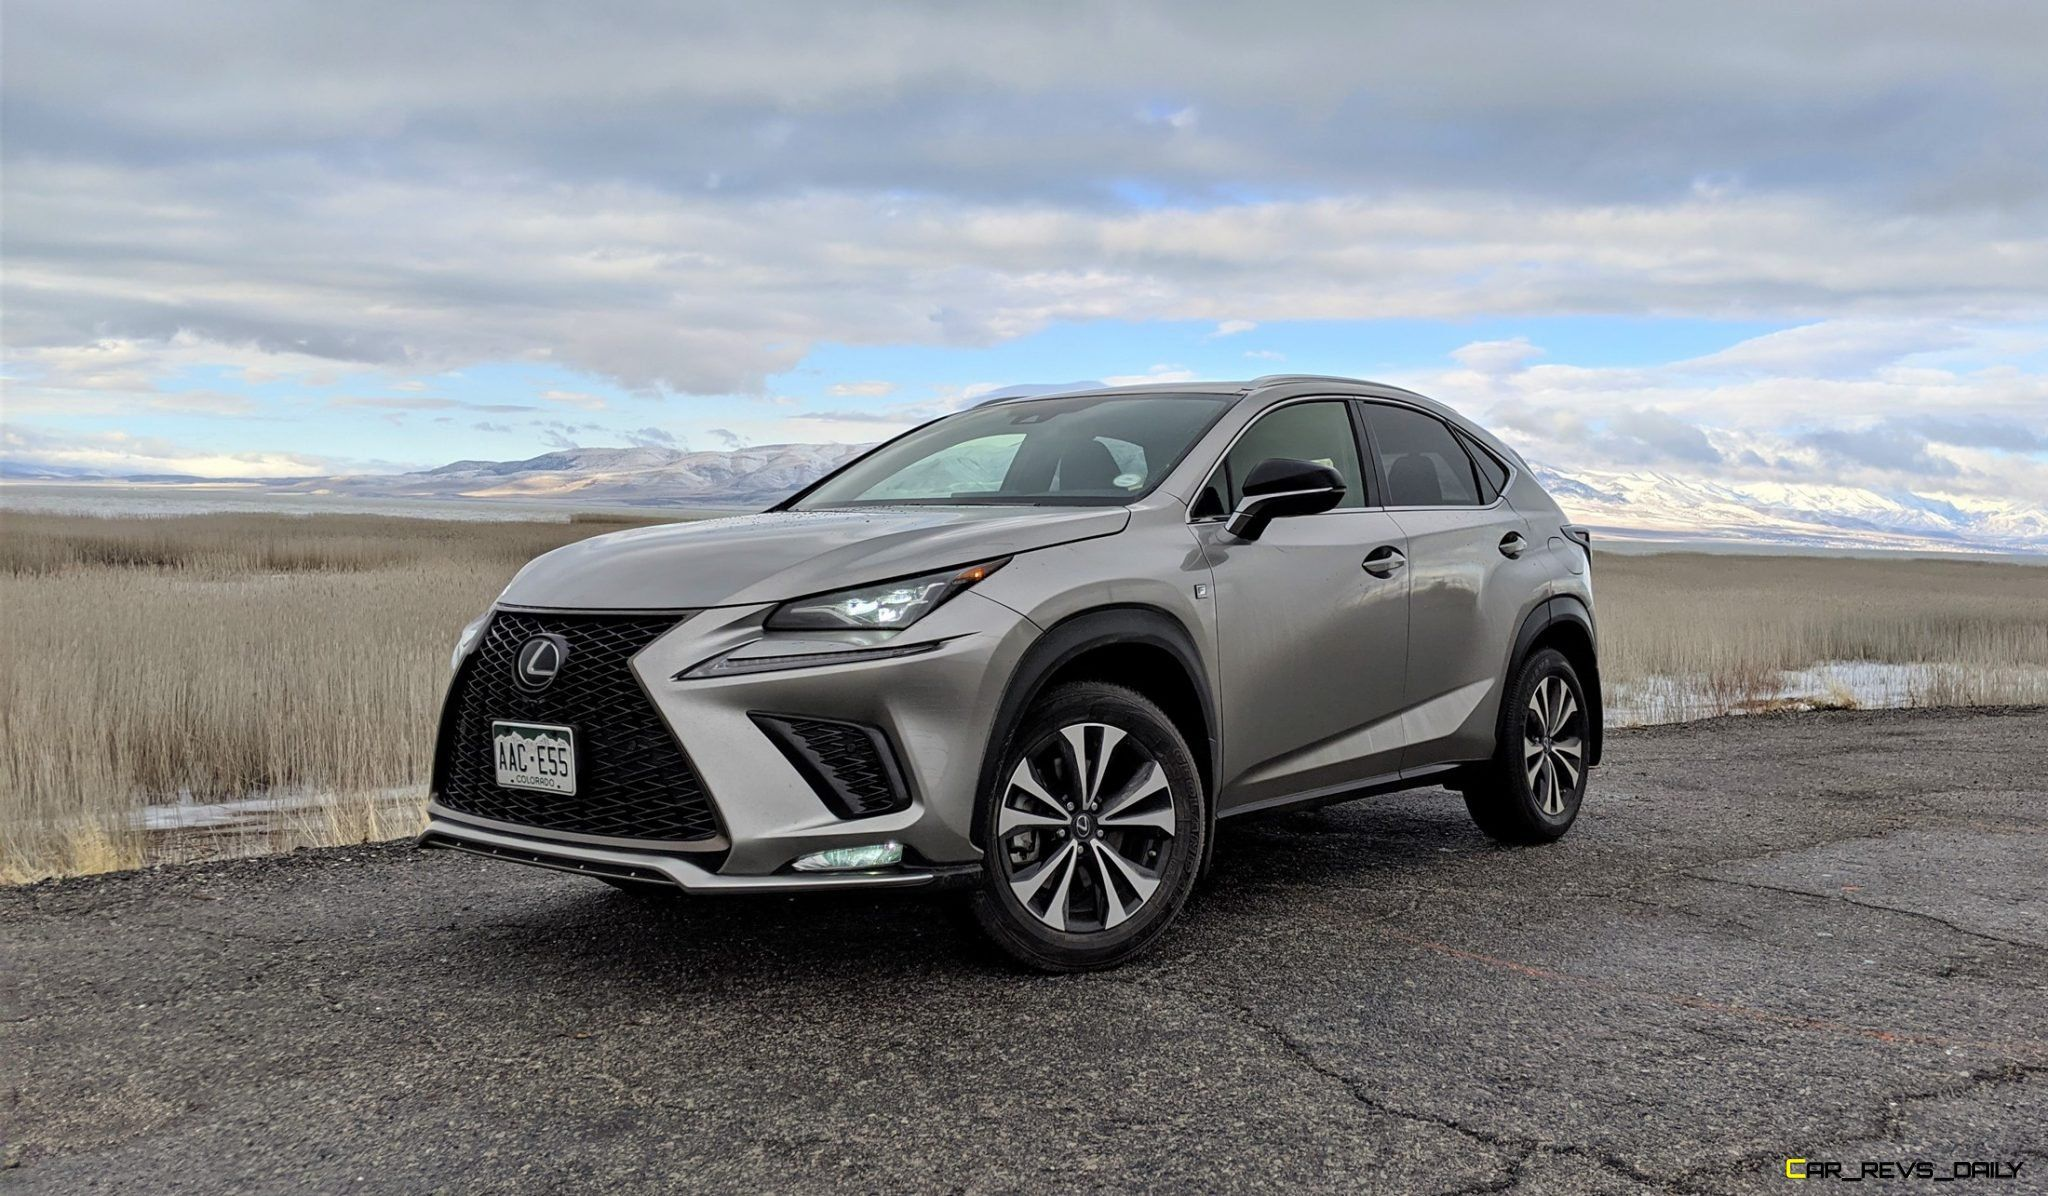 2020 Lexus Nx300 F Sport Review By Matt Barnes Car Shopping Car Revs Daily Com In 2020 Lexus Cars Lexus New Trucks